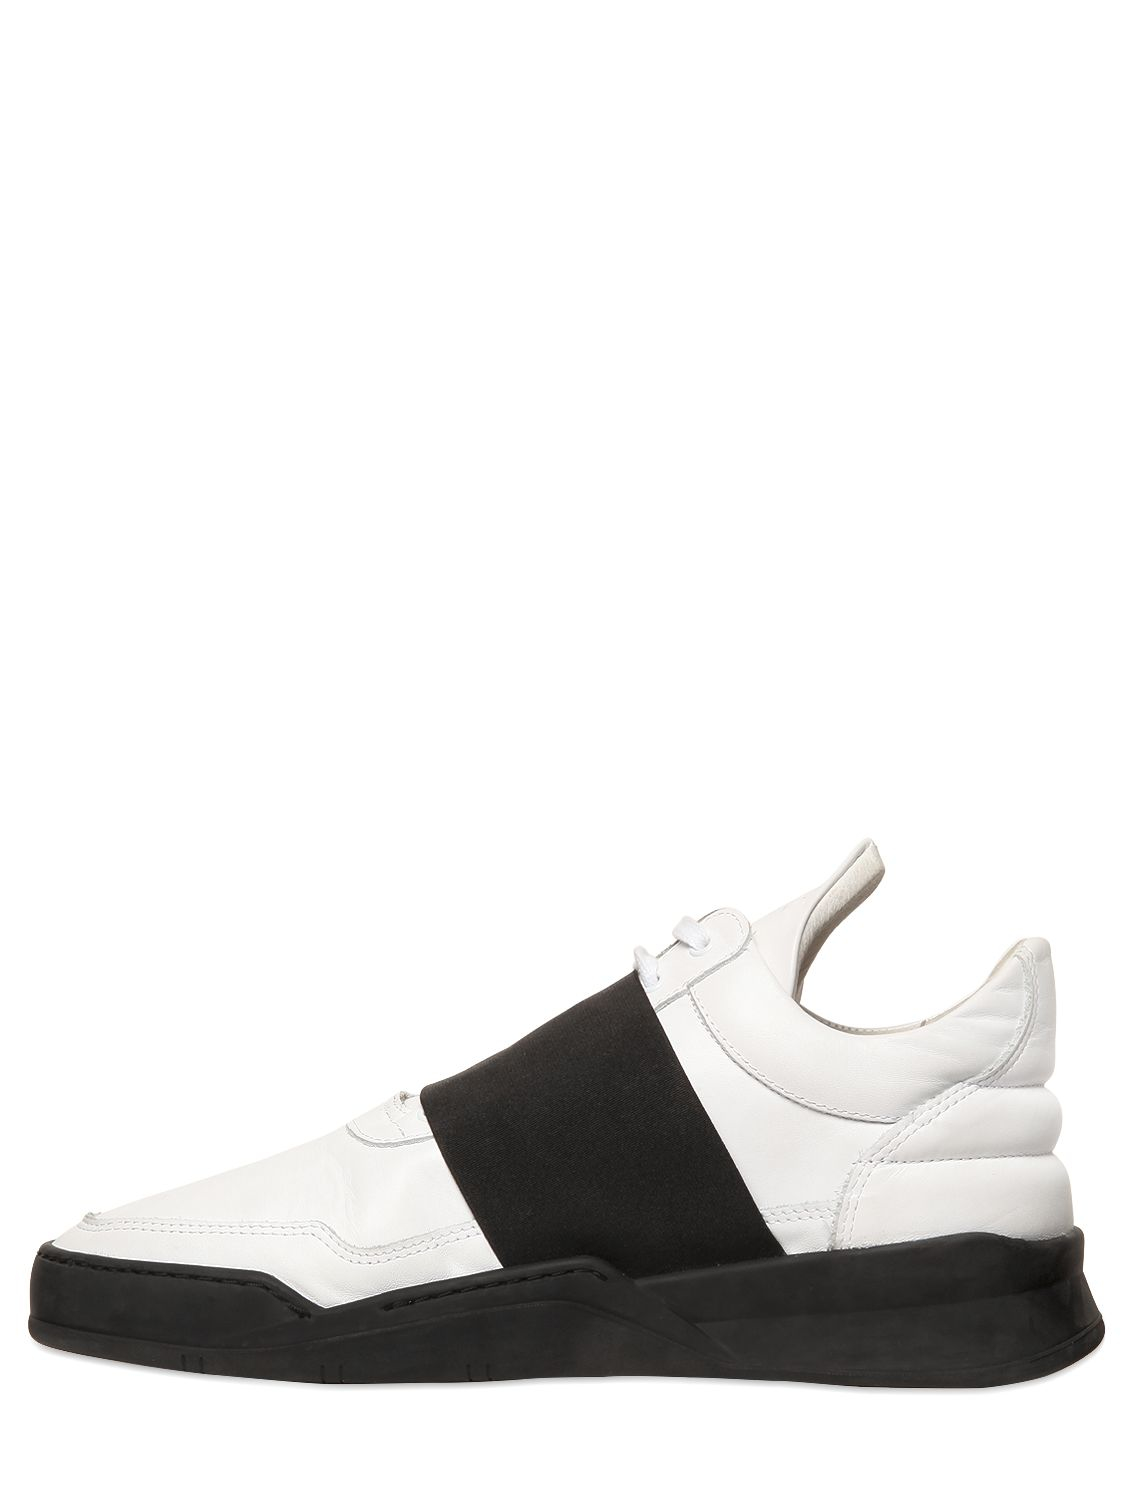 Lyst - Filling Pieces Elastic Band Leather Sneakers in Black for Men